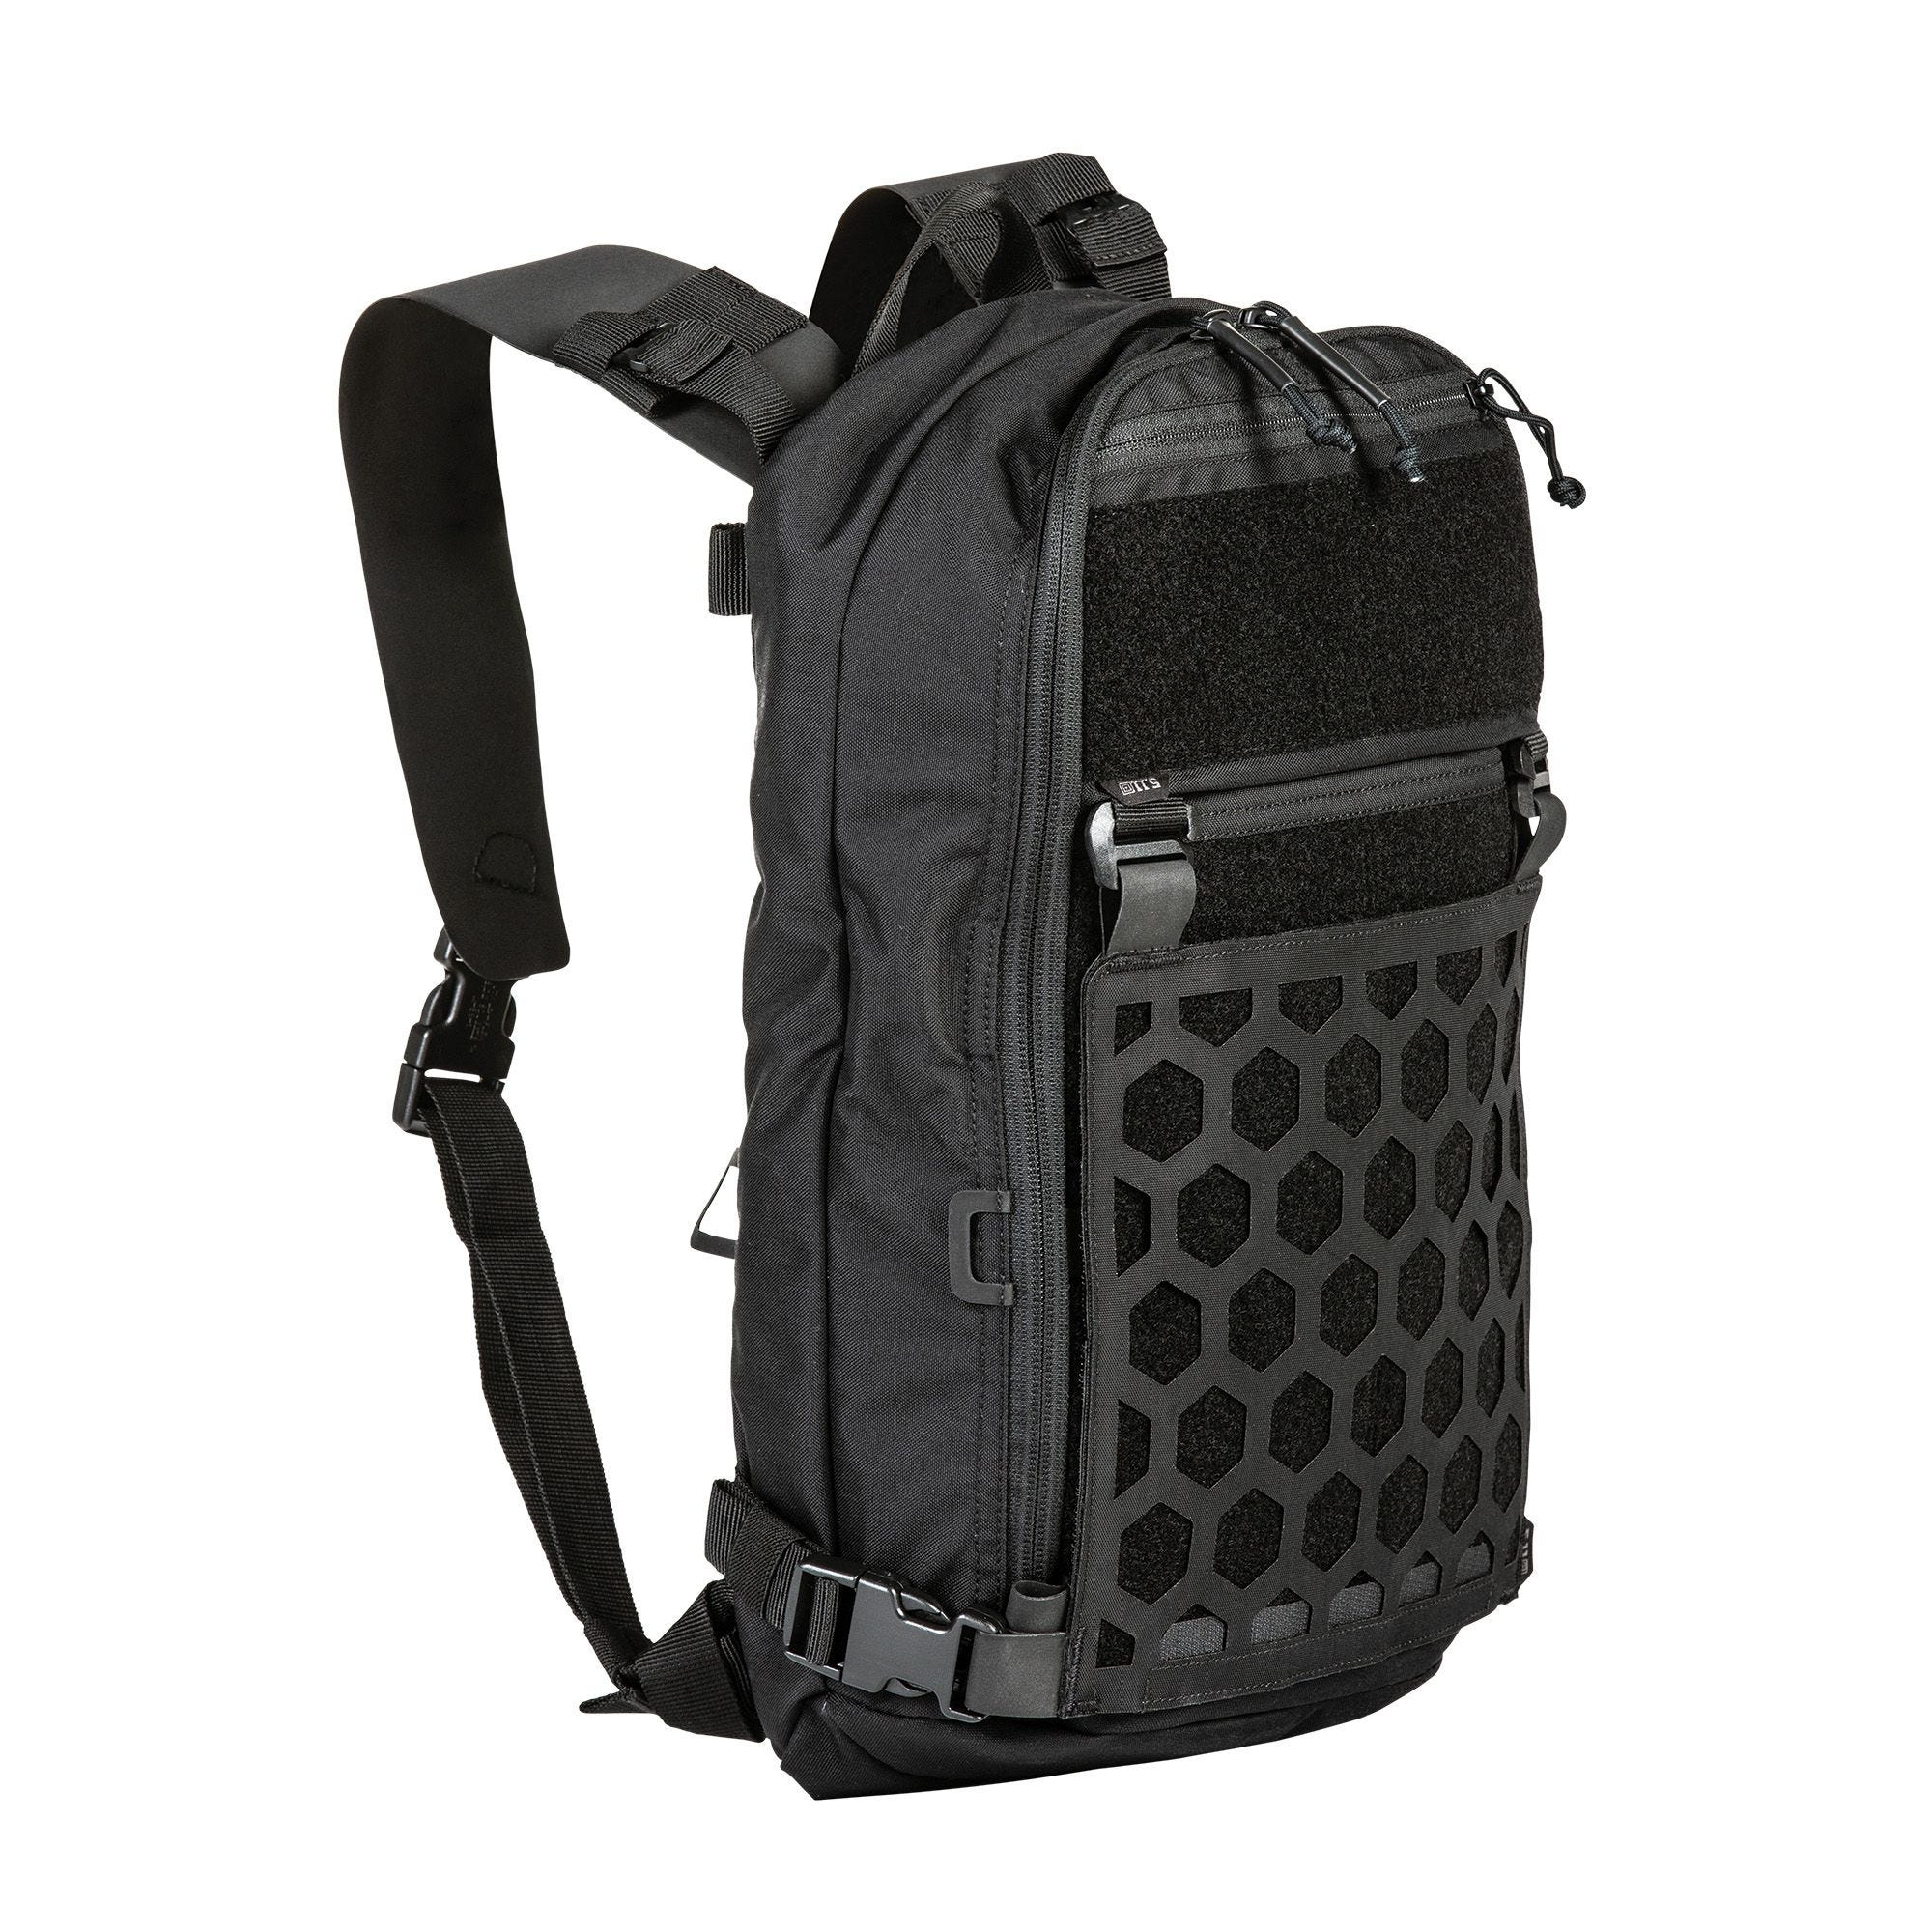 Balo 5.11tactical AMPC PACK 16L – Black